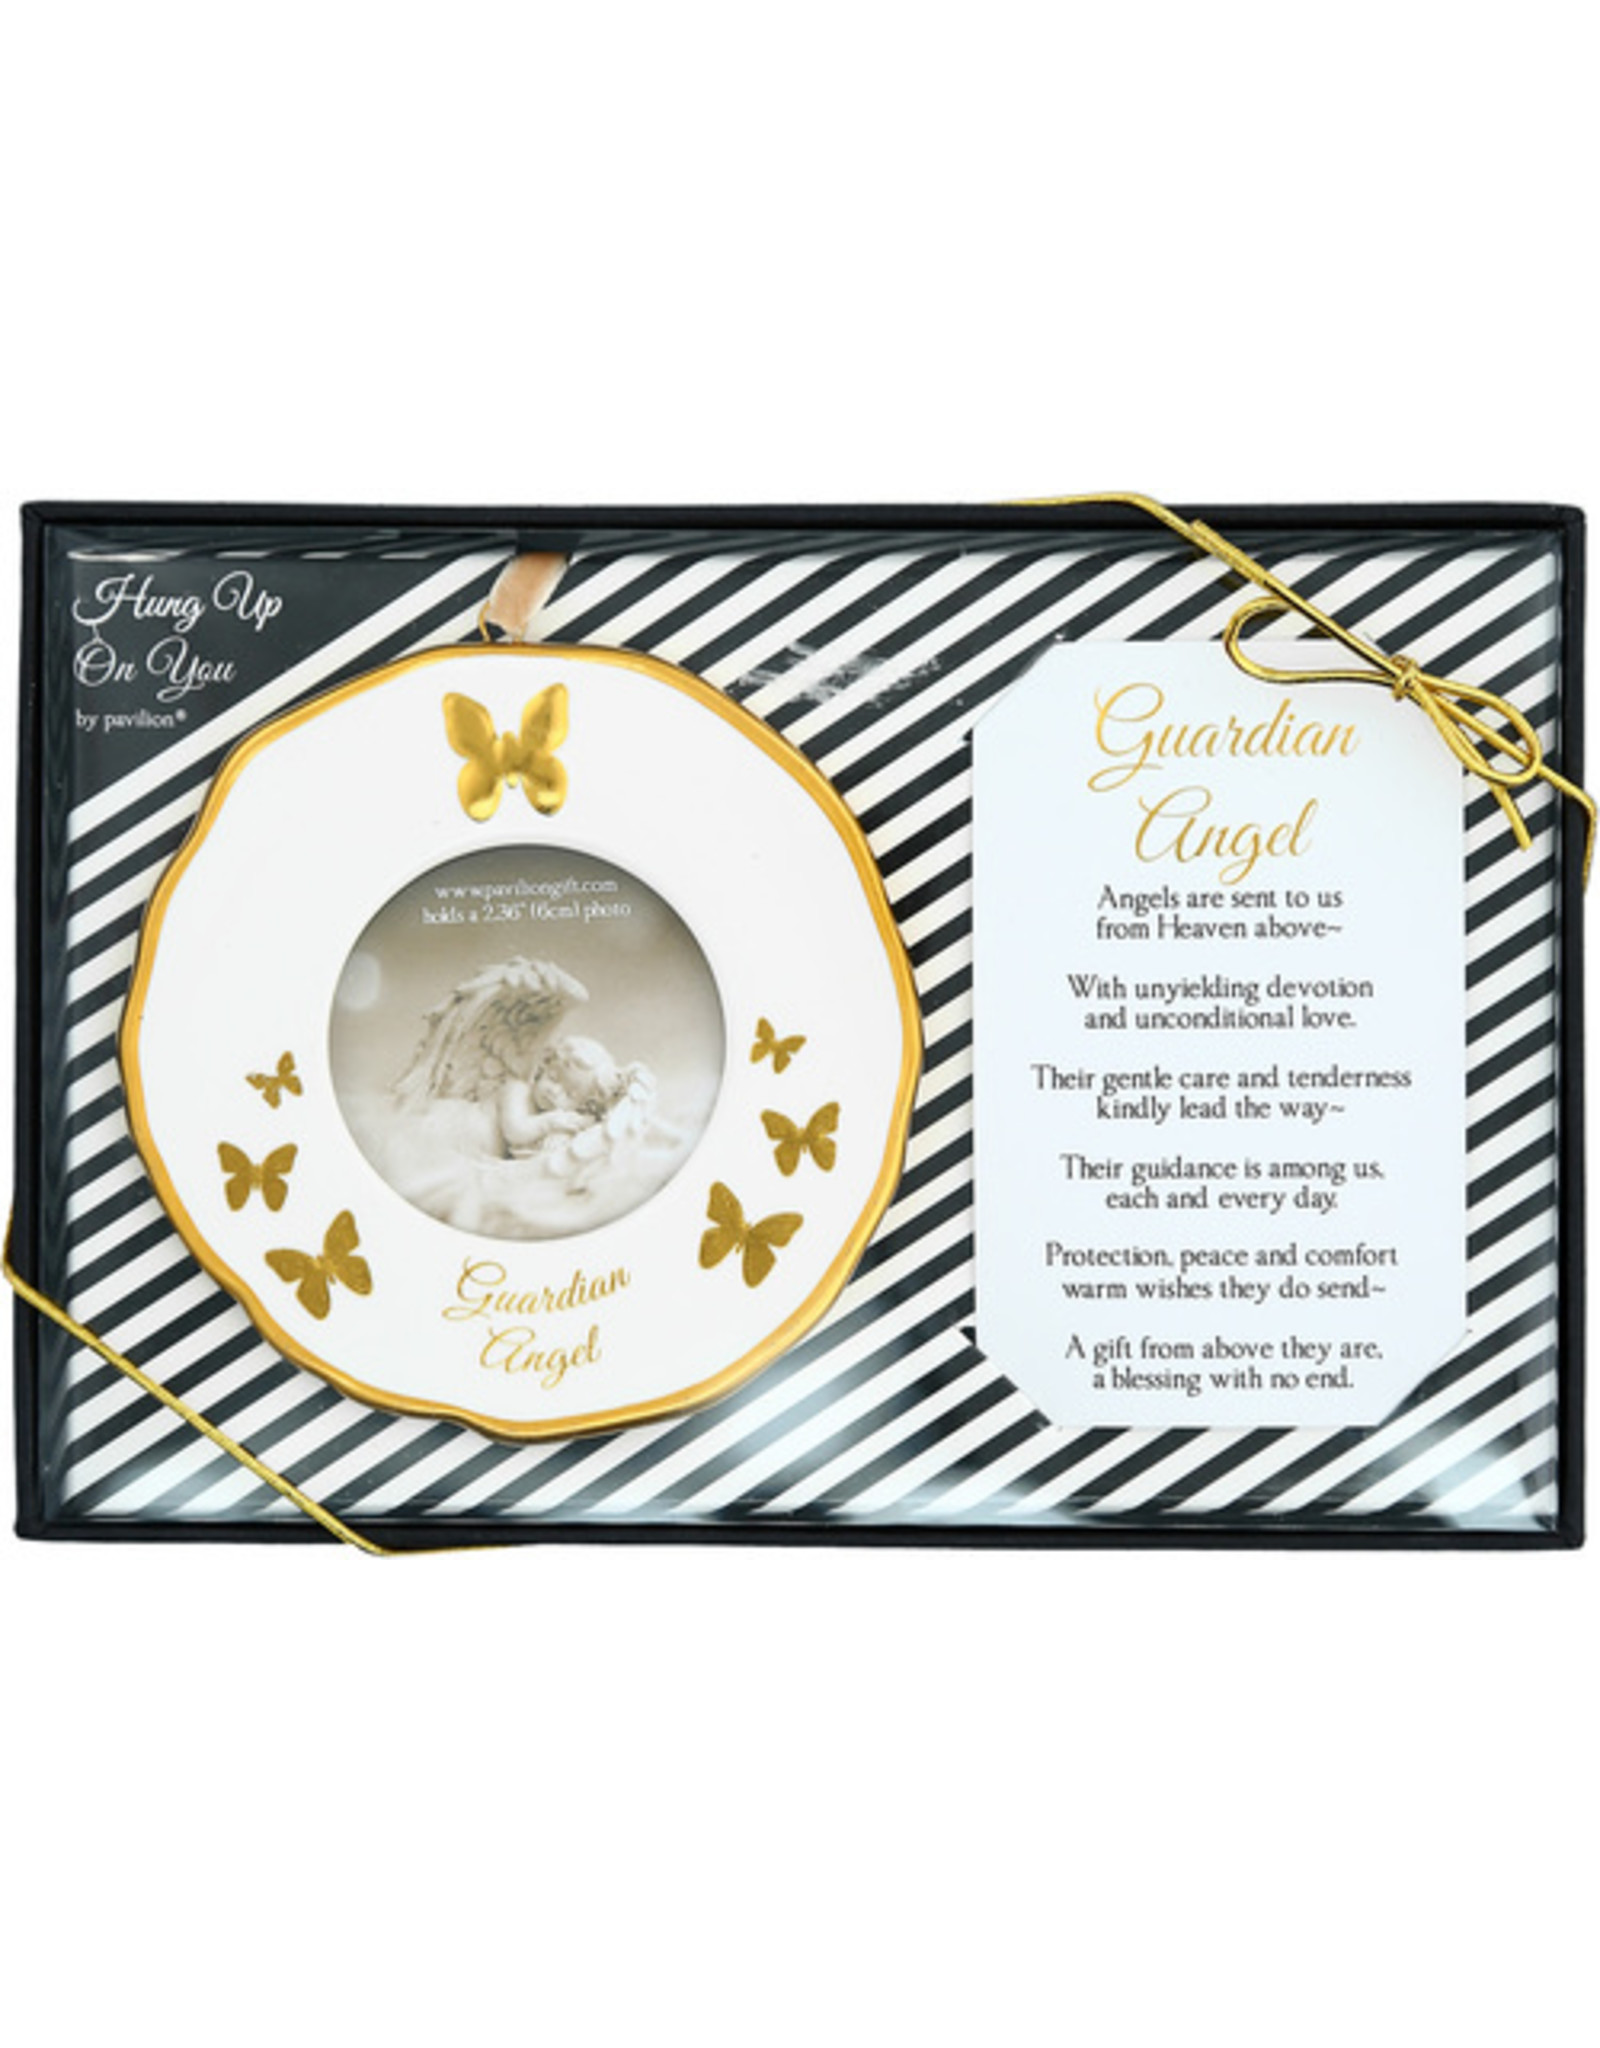 Pavilion Gift GUARDIAN ANGEL PHOTO FRAME ORNAMENT